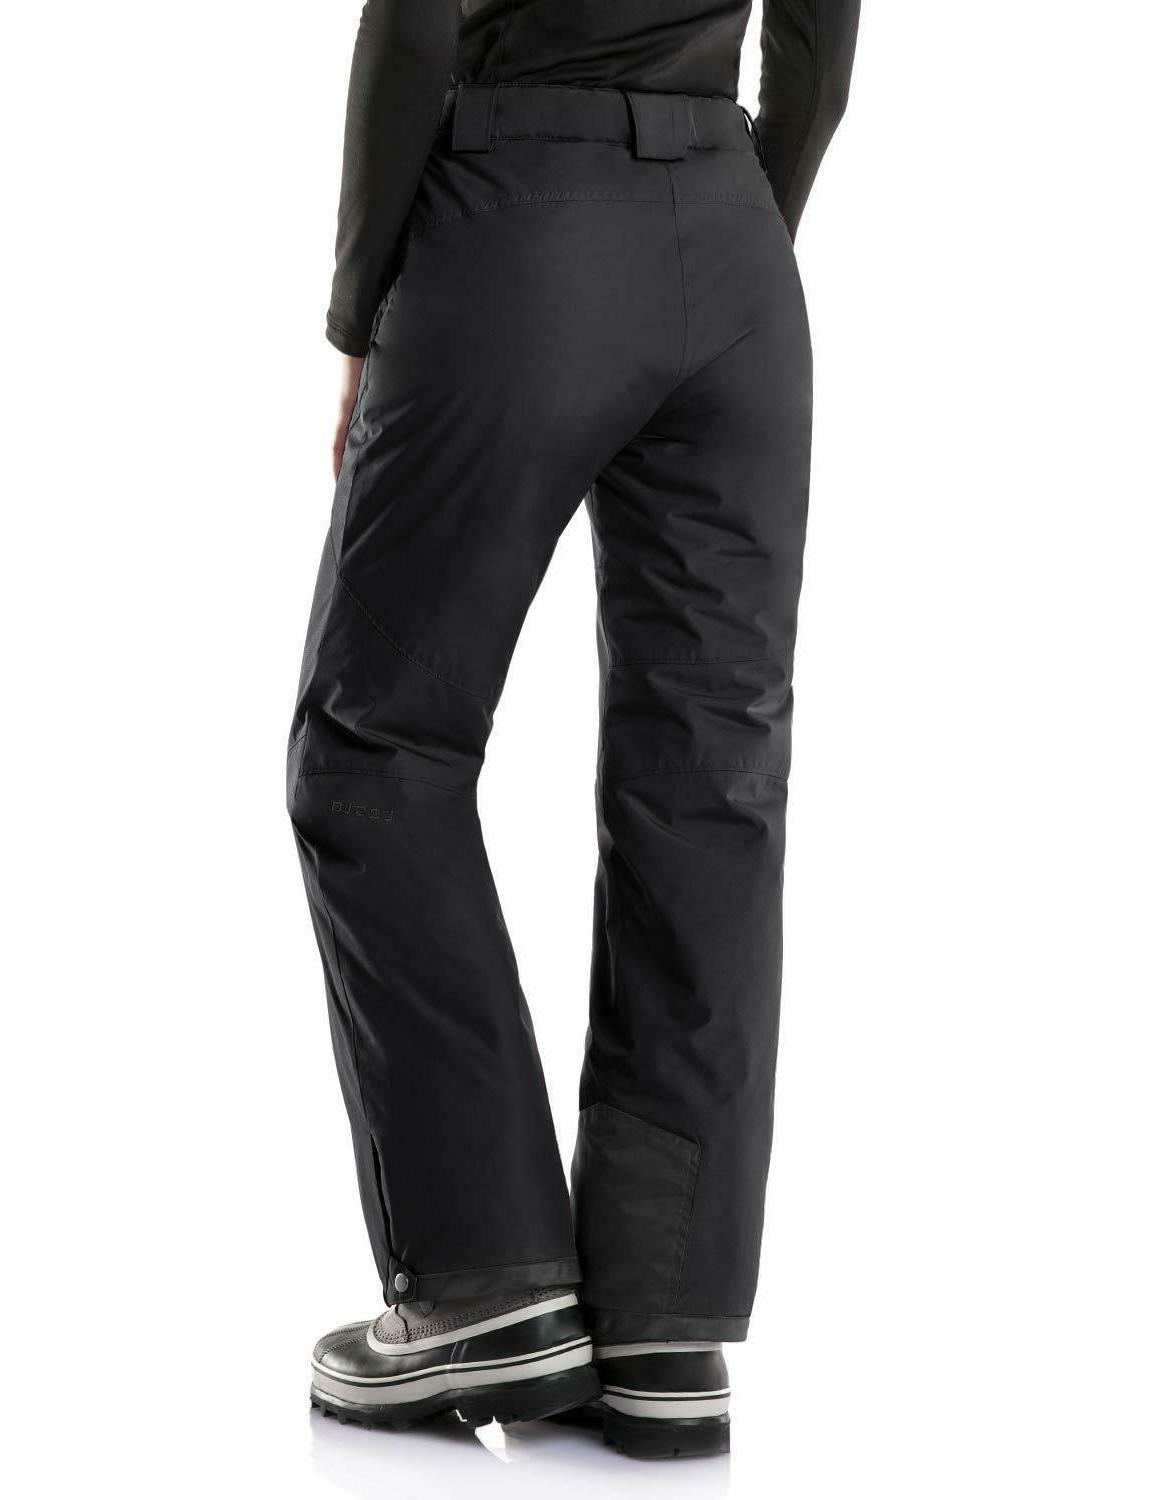 TSLA Women's Rip-Stop Snow Black New with Tags